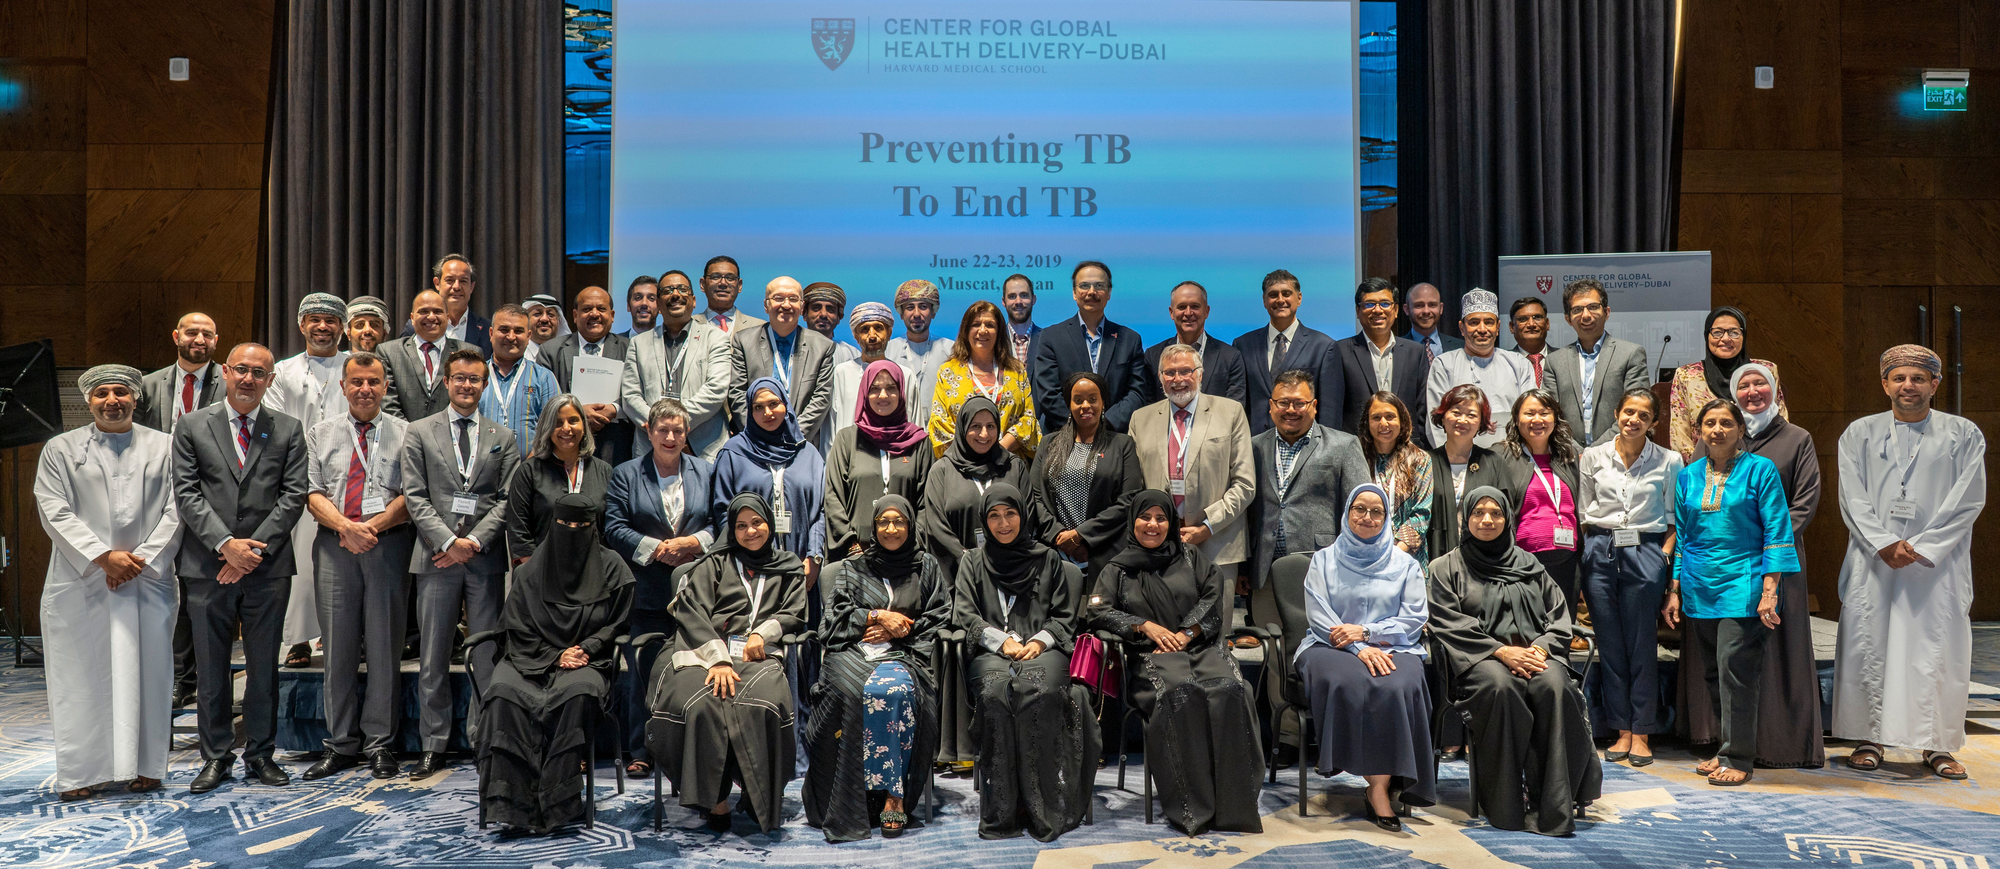 The 1st Middle East TB Experts Meeting